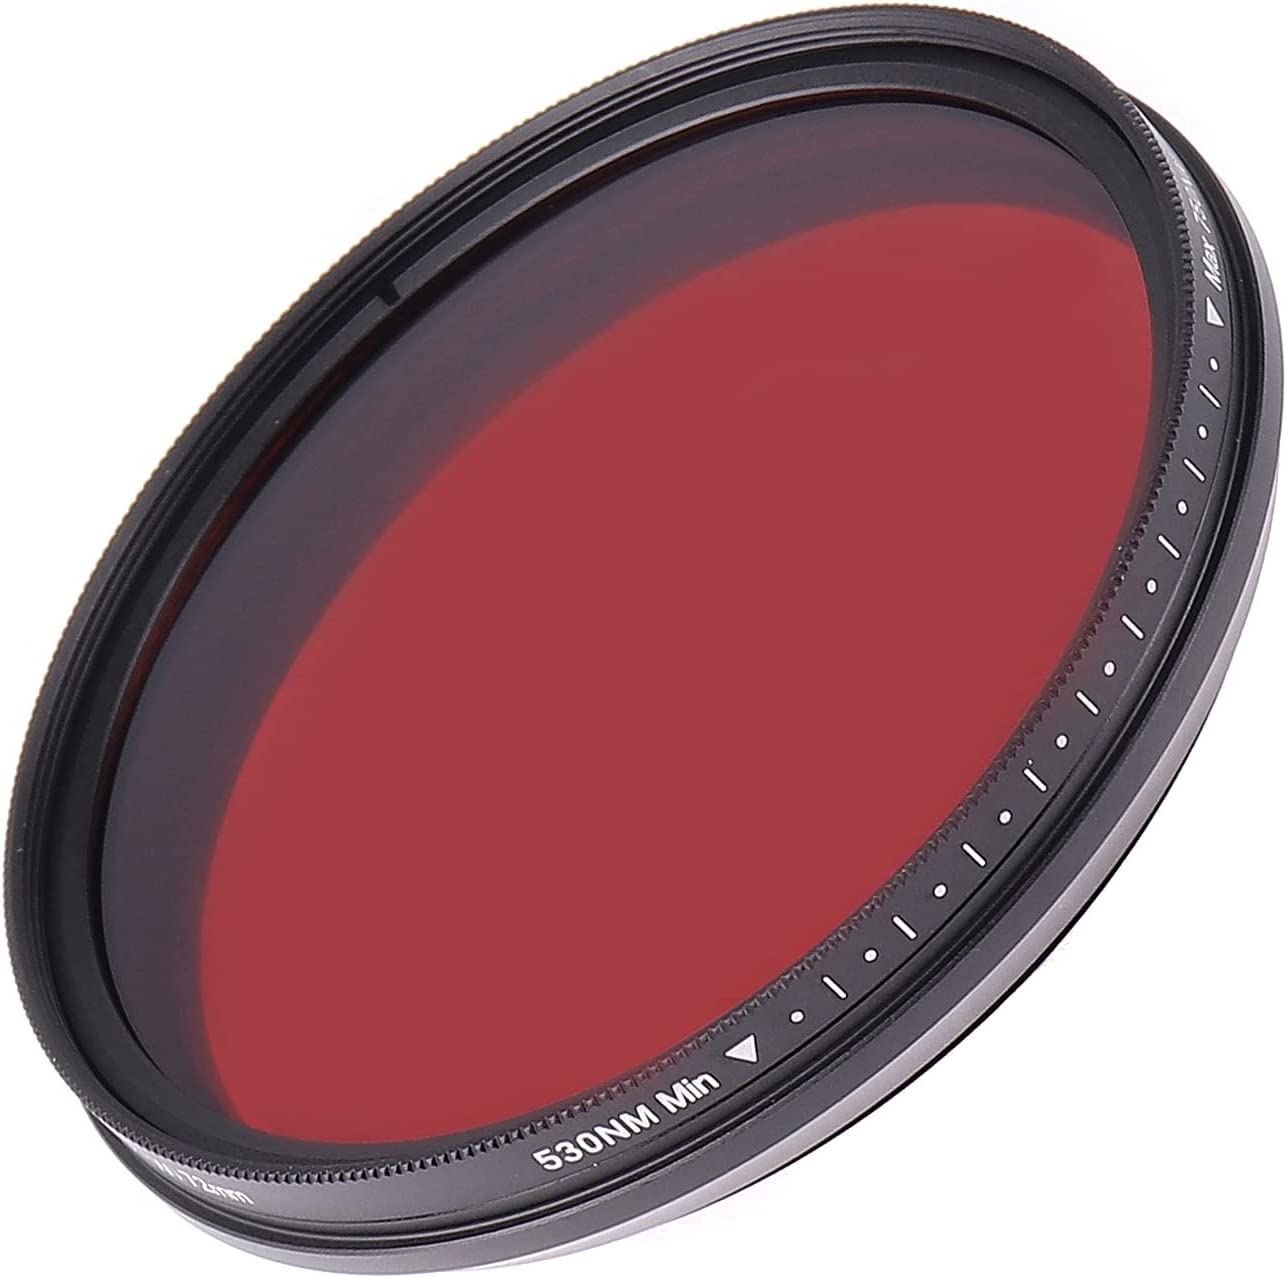 6 in 1 Infrared IR Pass X-Ray online shop to Filter unisex Adjustable 530nm Lens 7